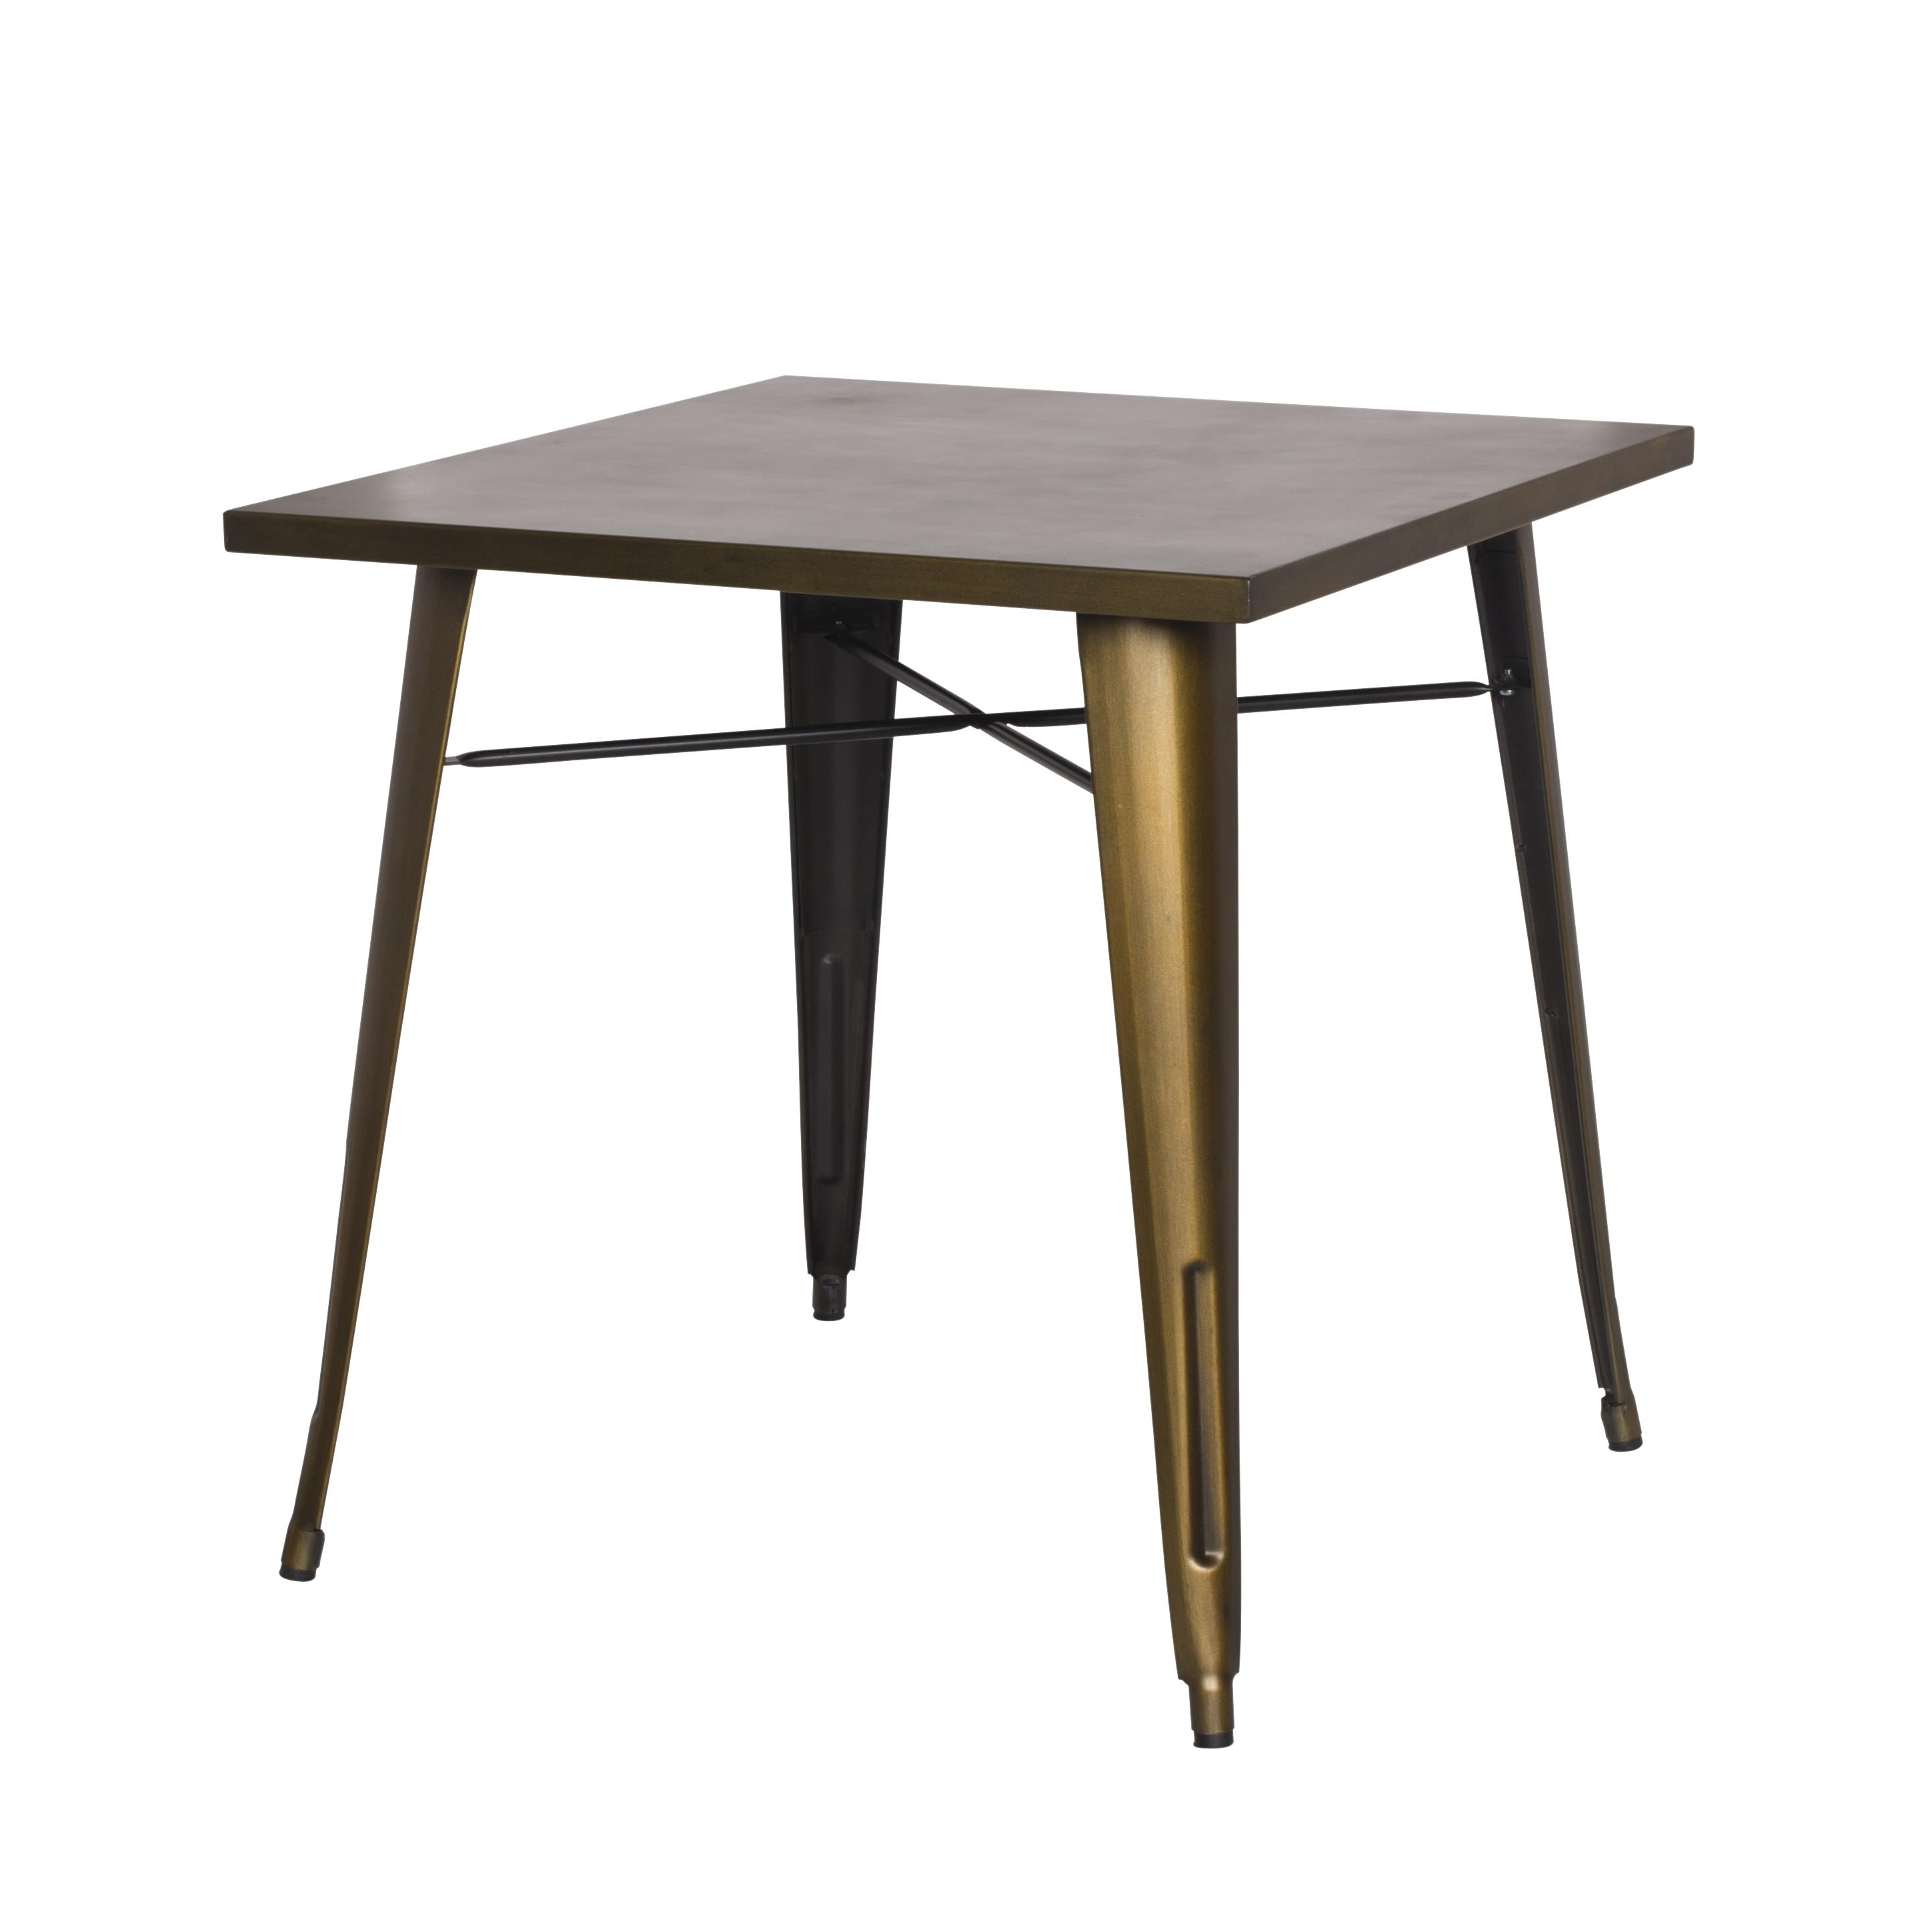 Most Recent Metropolis Kd Metal Dining Table, Brushed Copper – Boulevard Urban Intended For Brushed Metal Dining Tables (View 18 of 25)